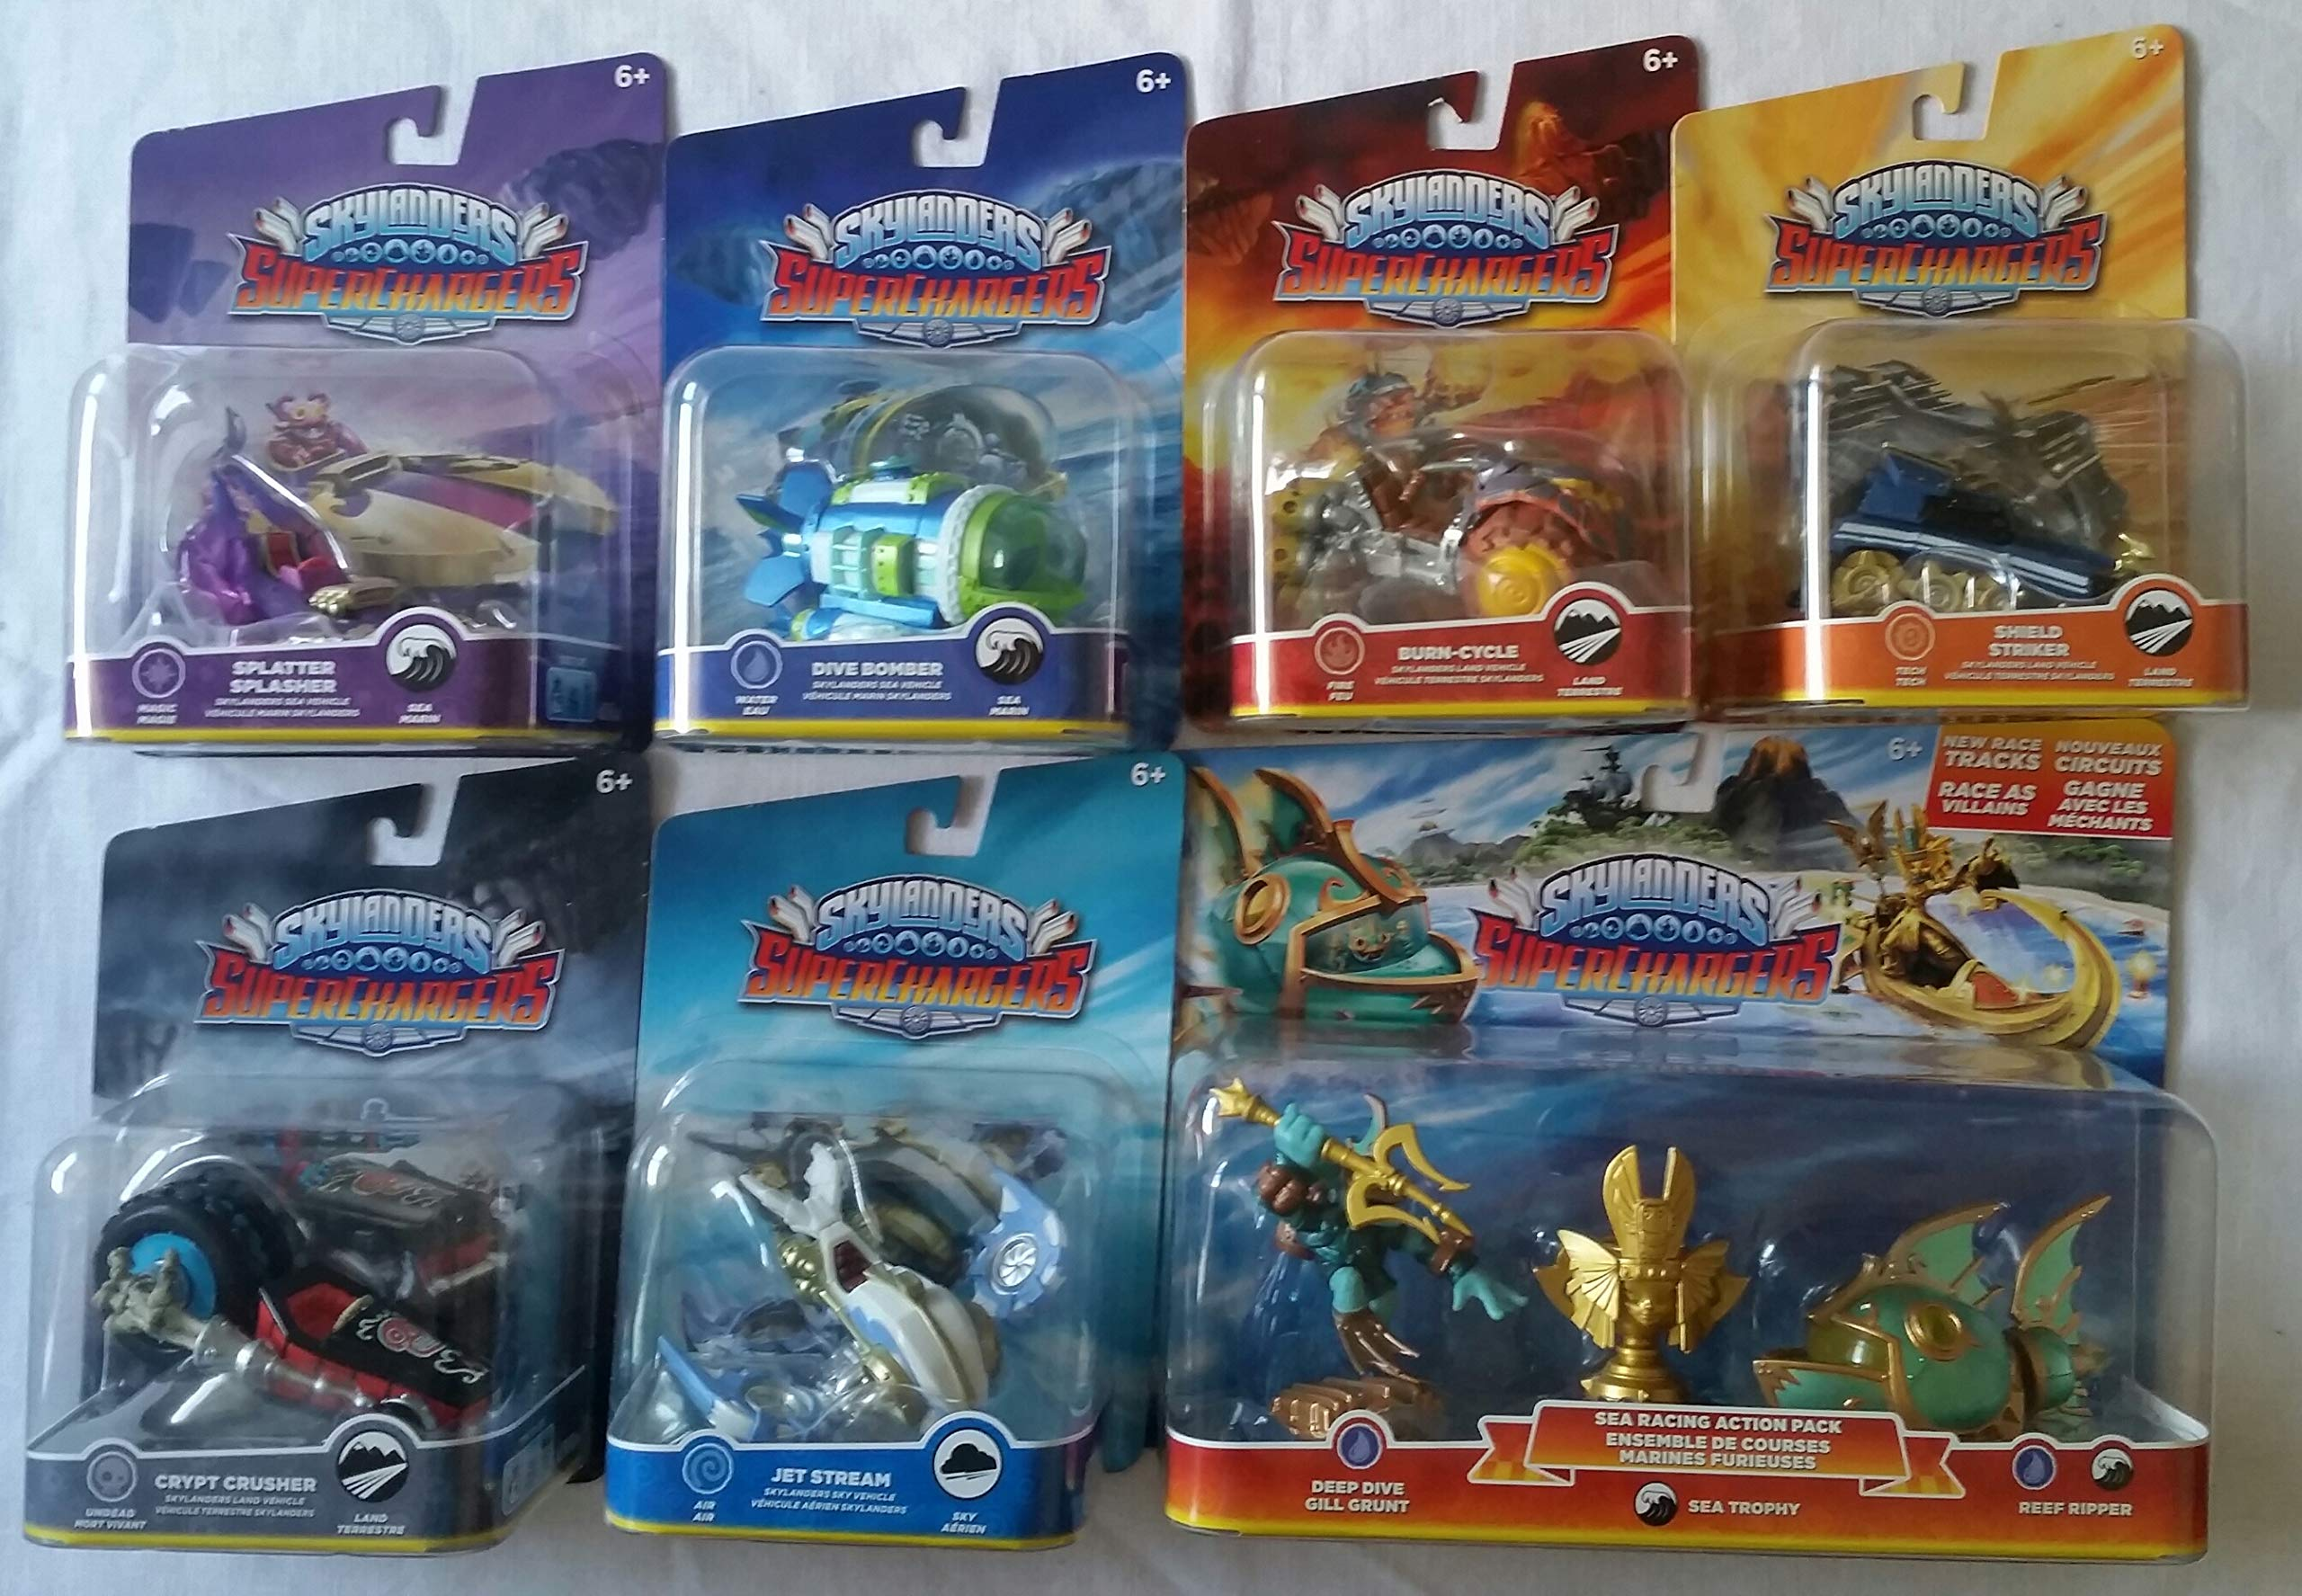 Skylanders SuperChargers 7 Pack Vehicle Starter Bundle! 7 Vehicles, 1 Trophy, 1 Character: Crypt Crusher, Dive Bomber, Jet Stream, Splatter Splasher, Shield Striker, Burn-Cycle , and Sea Racing Pack